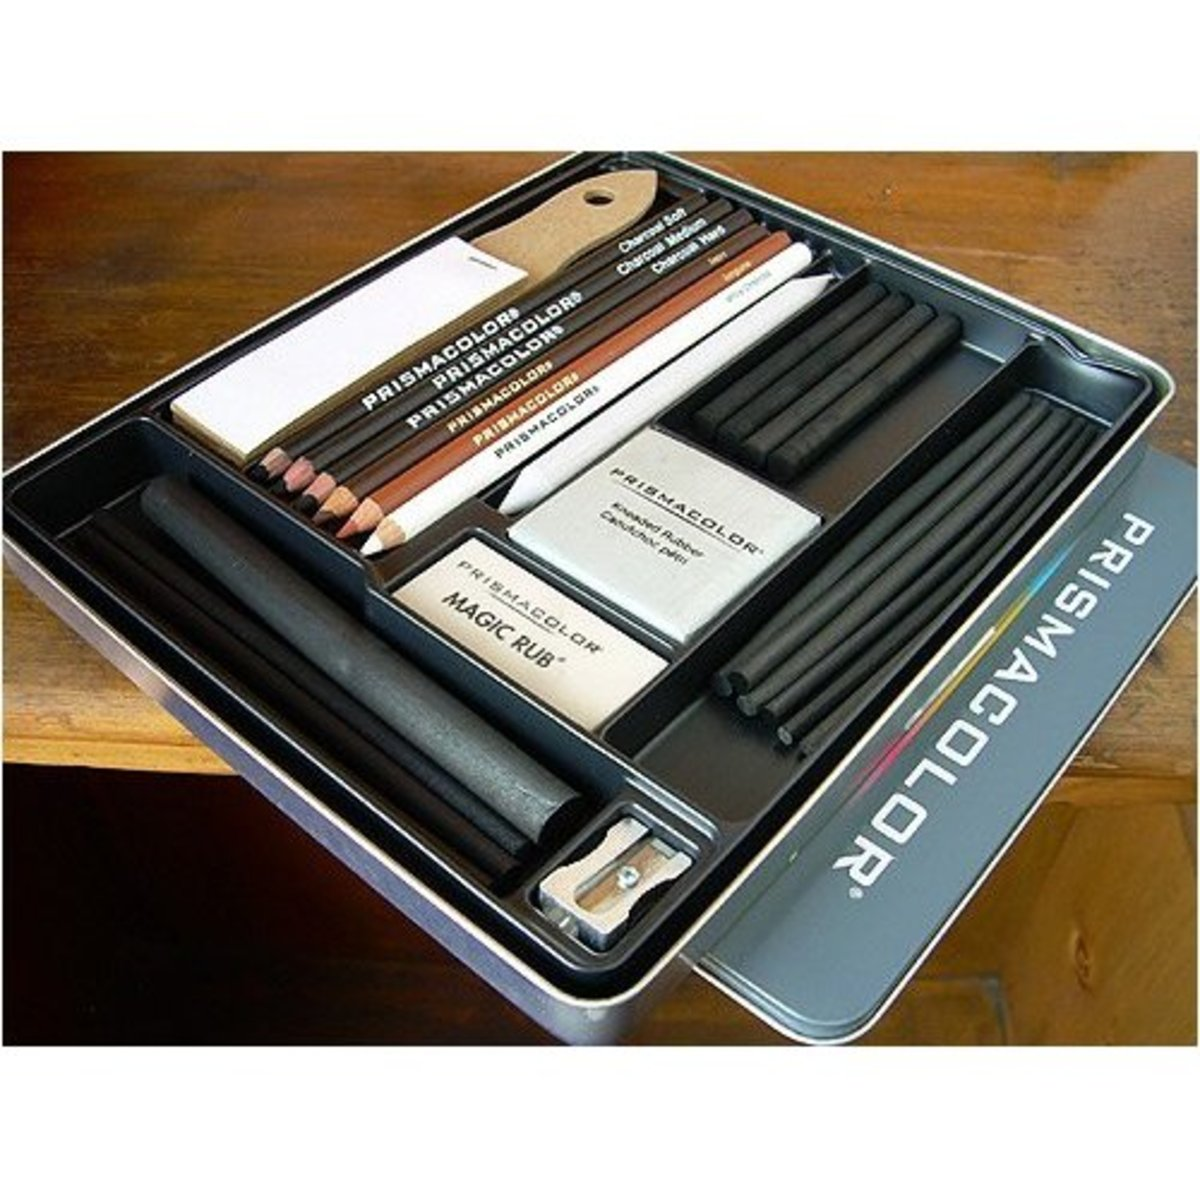 Charcoal pencil sets for creating good sketches and drawings.